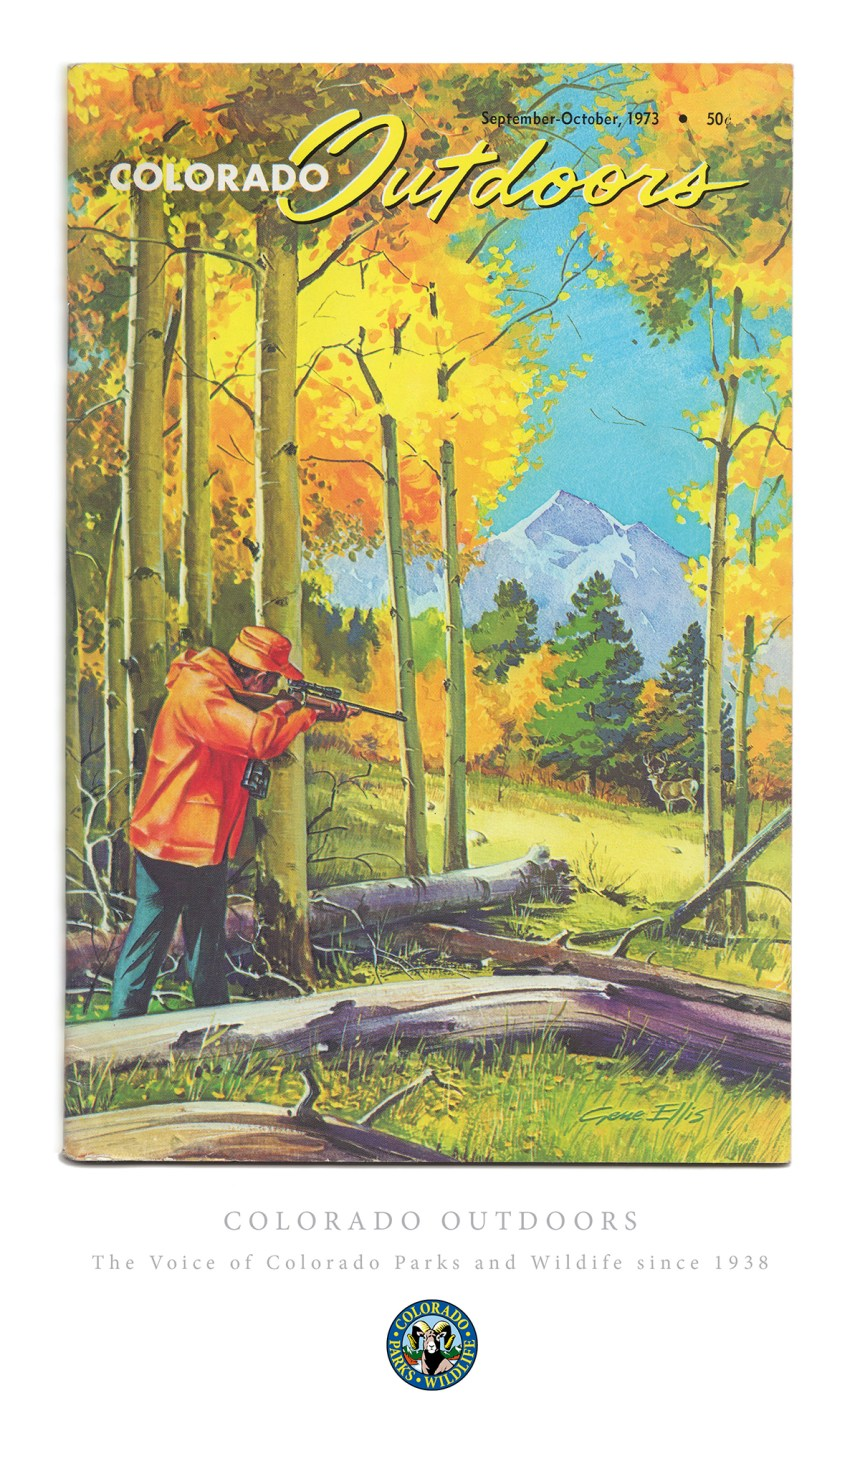 Colorado Outdoors Vintage Cover Poster